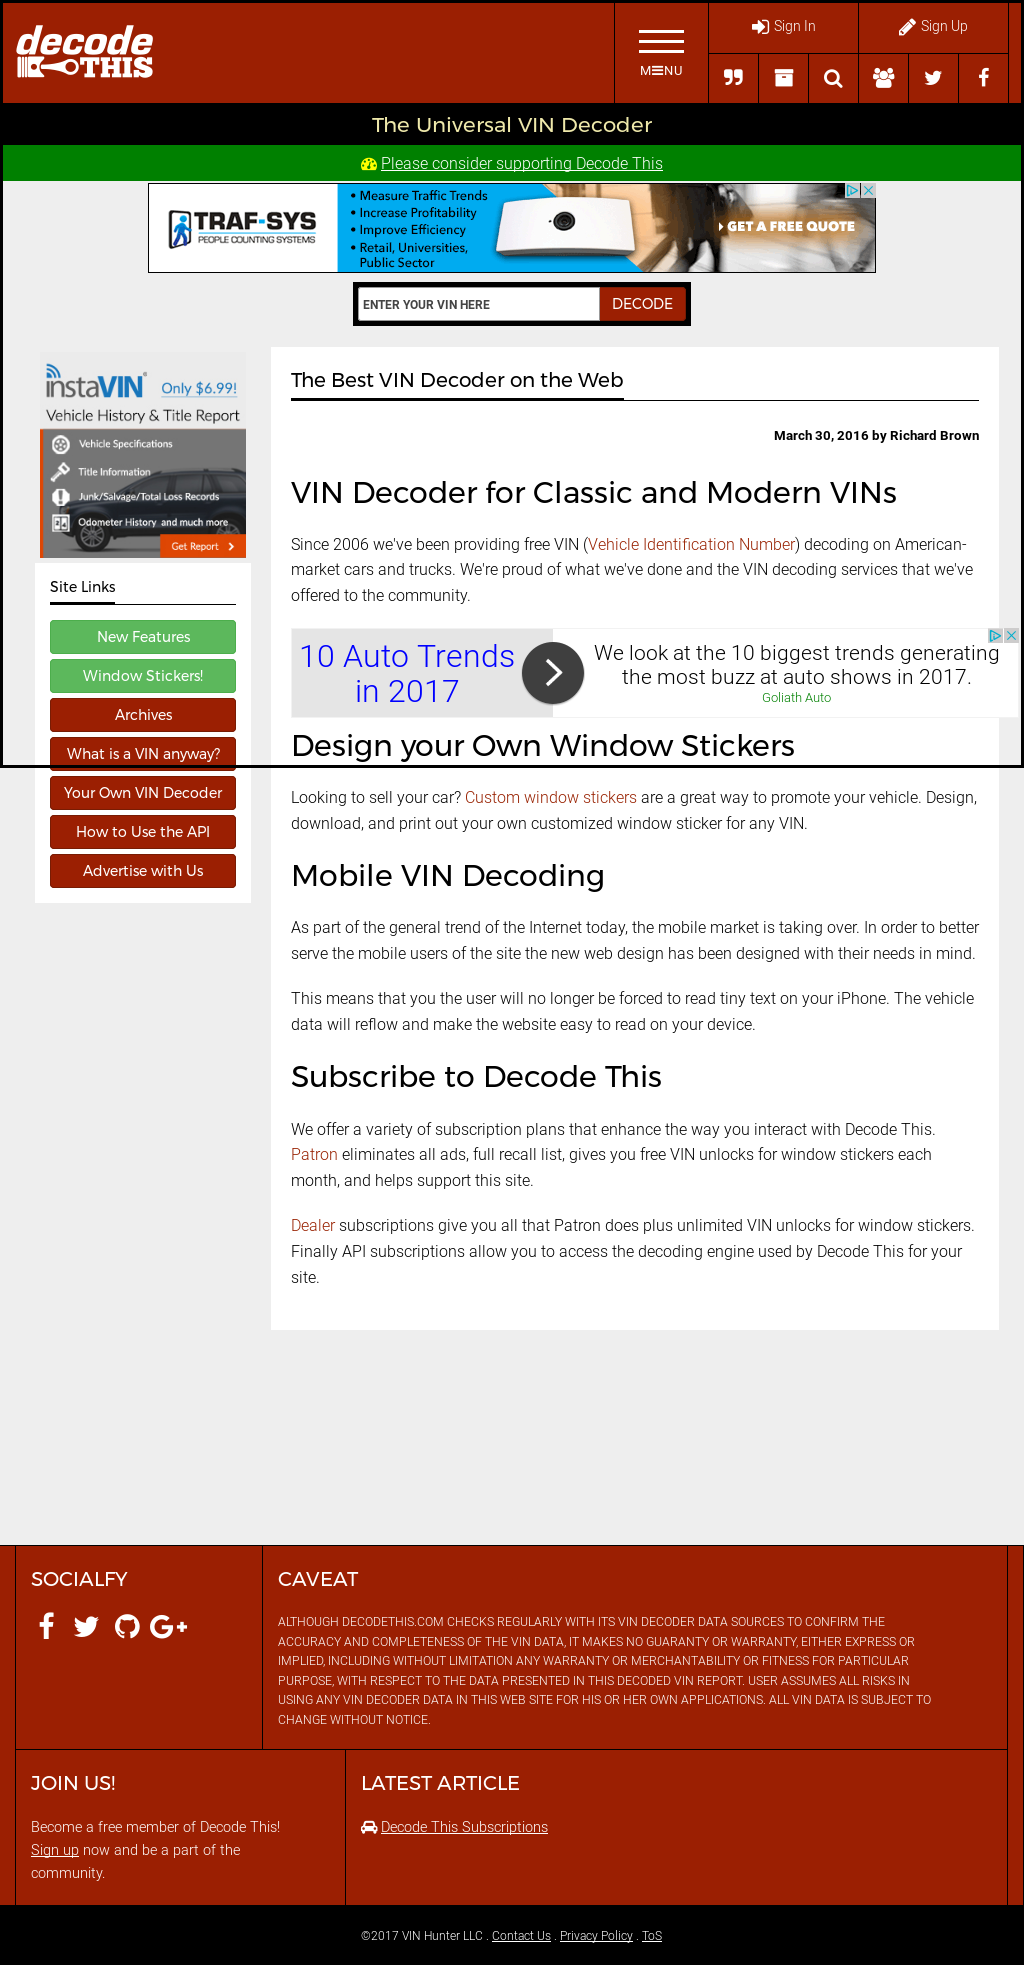 Decode This! Free Vin Decoder Competitors, Revenue and